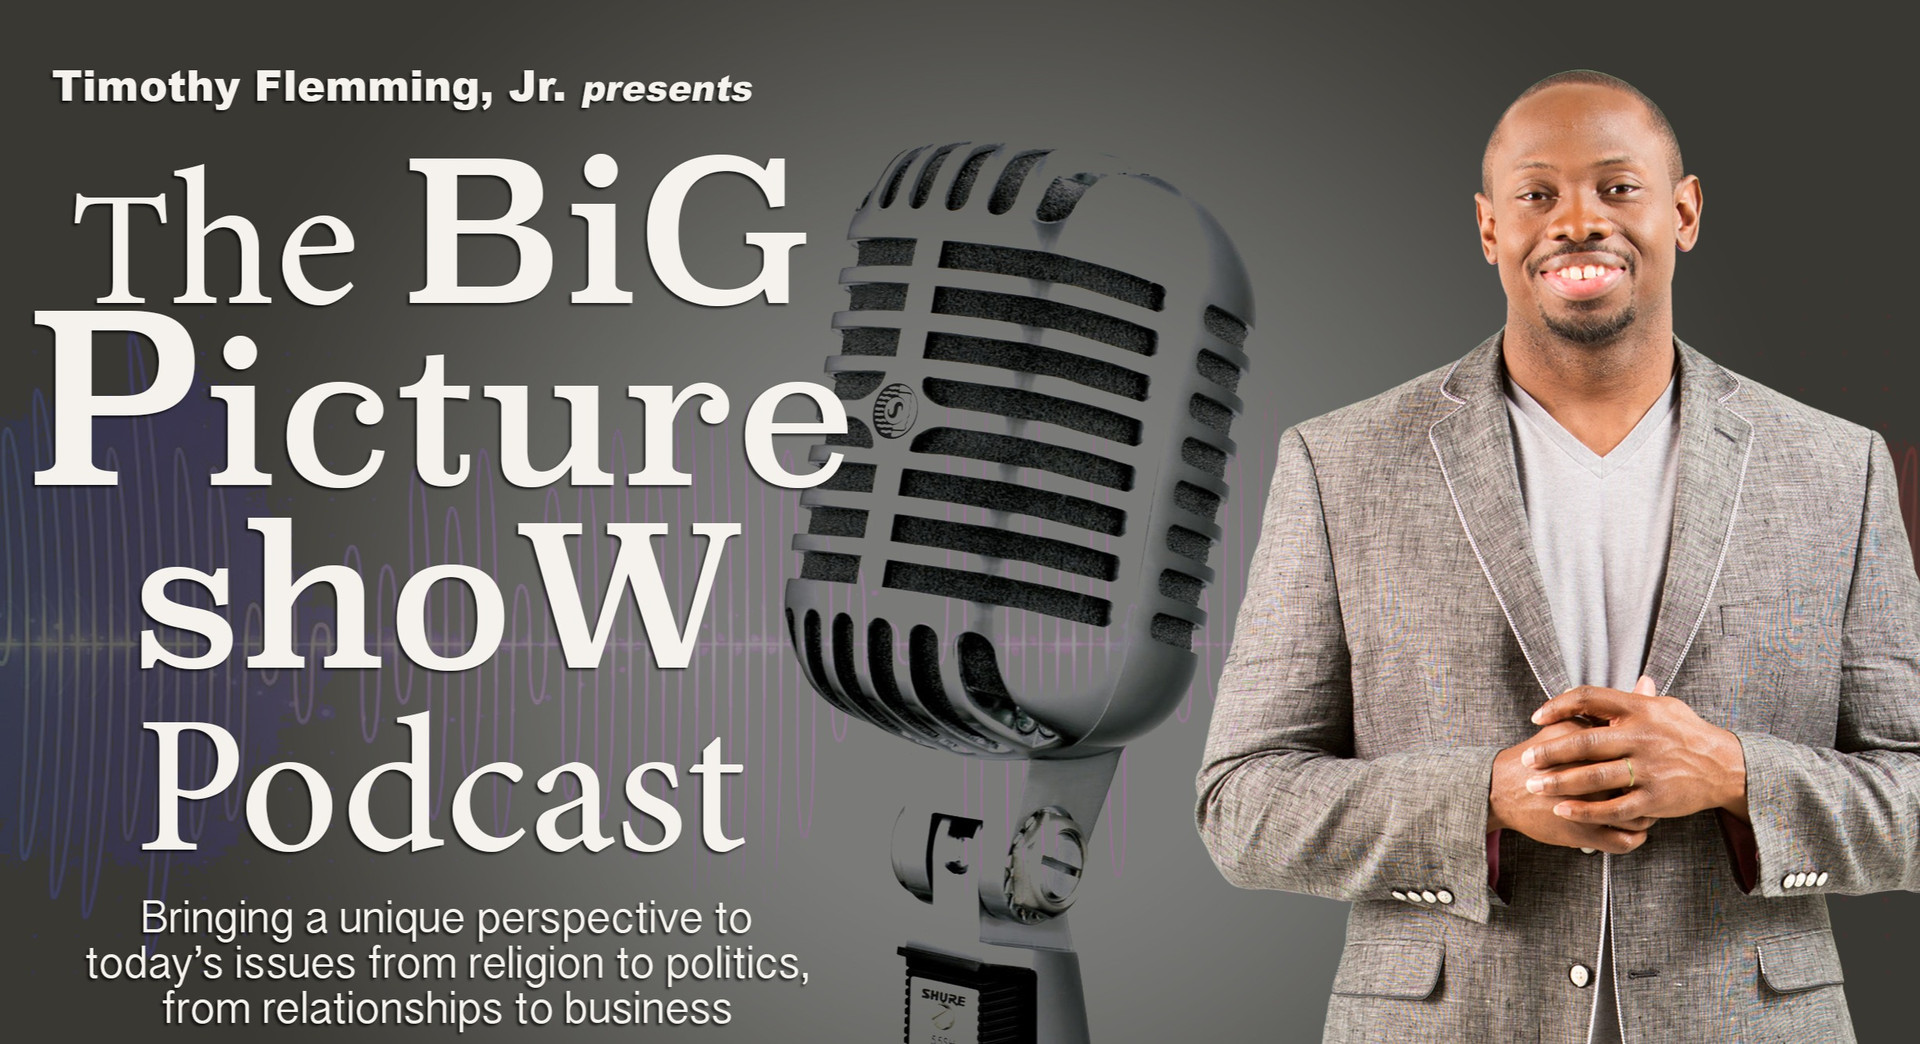 The Big Picture Show Podcast